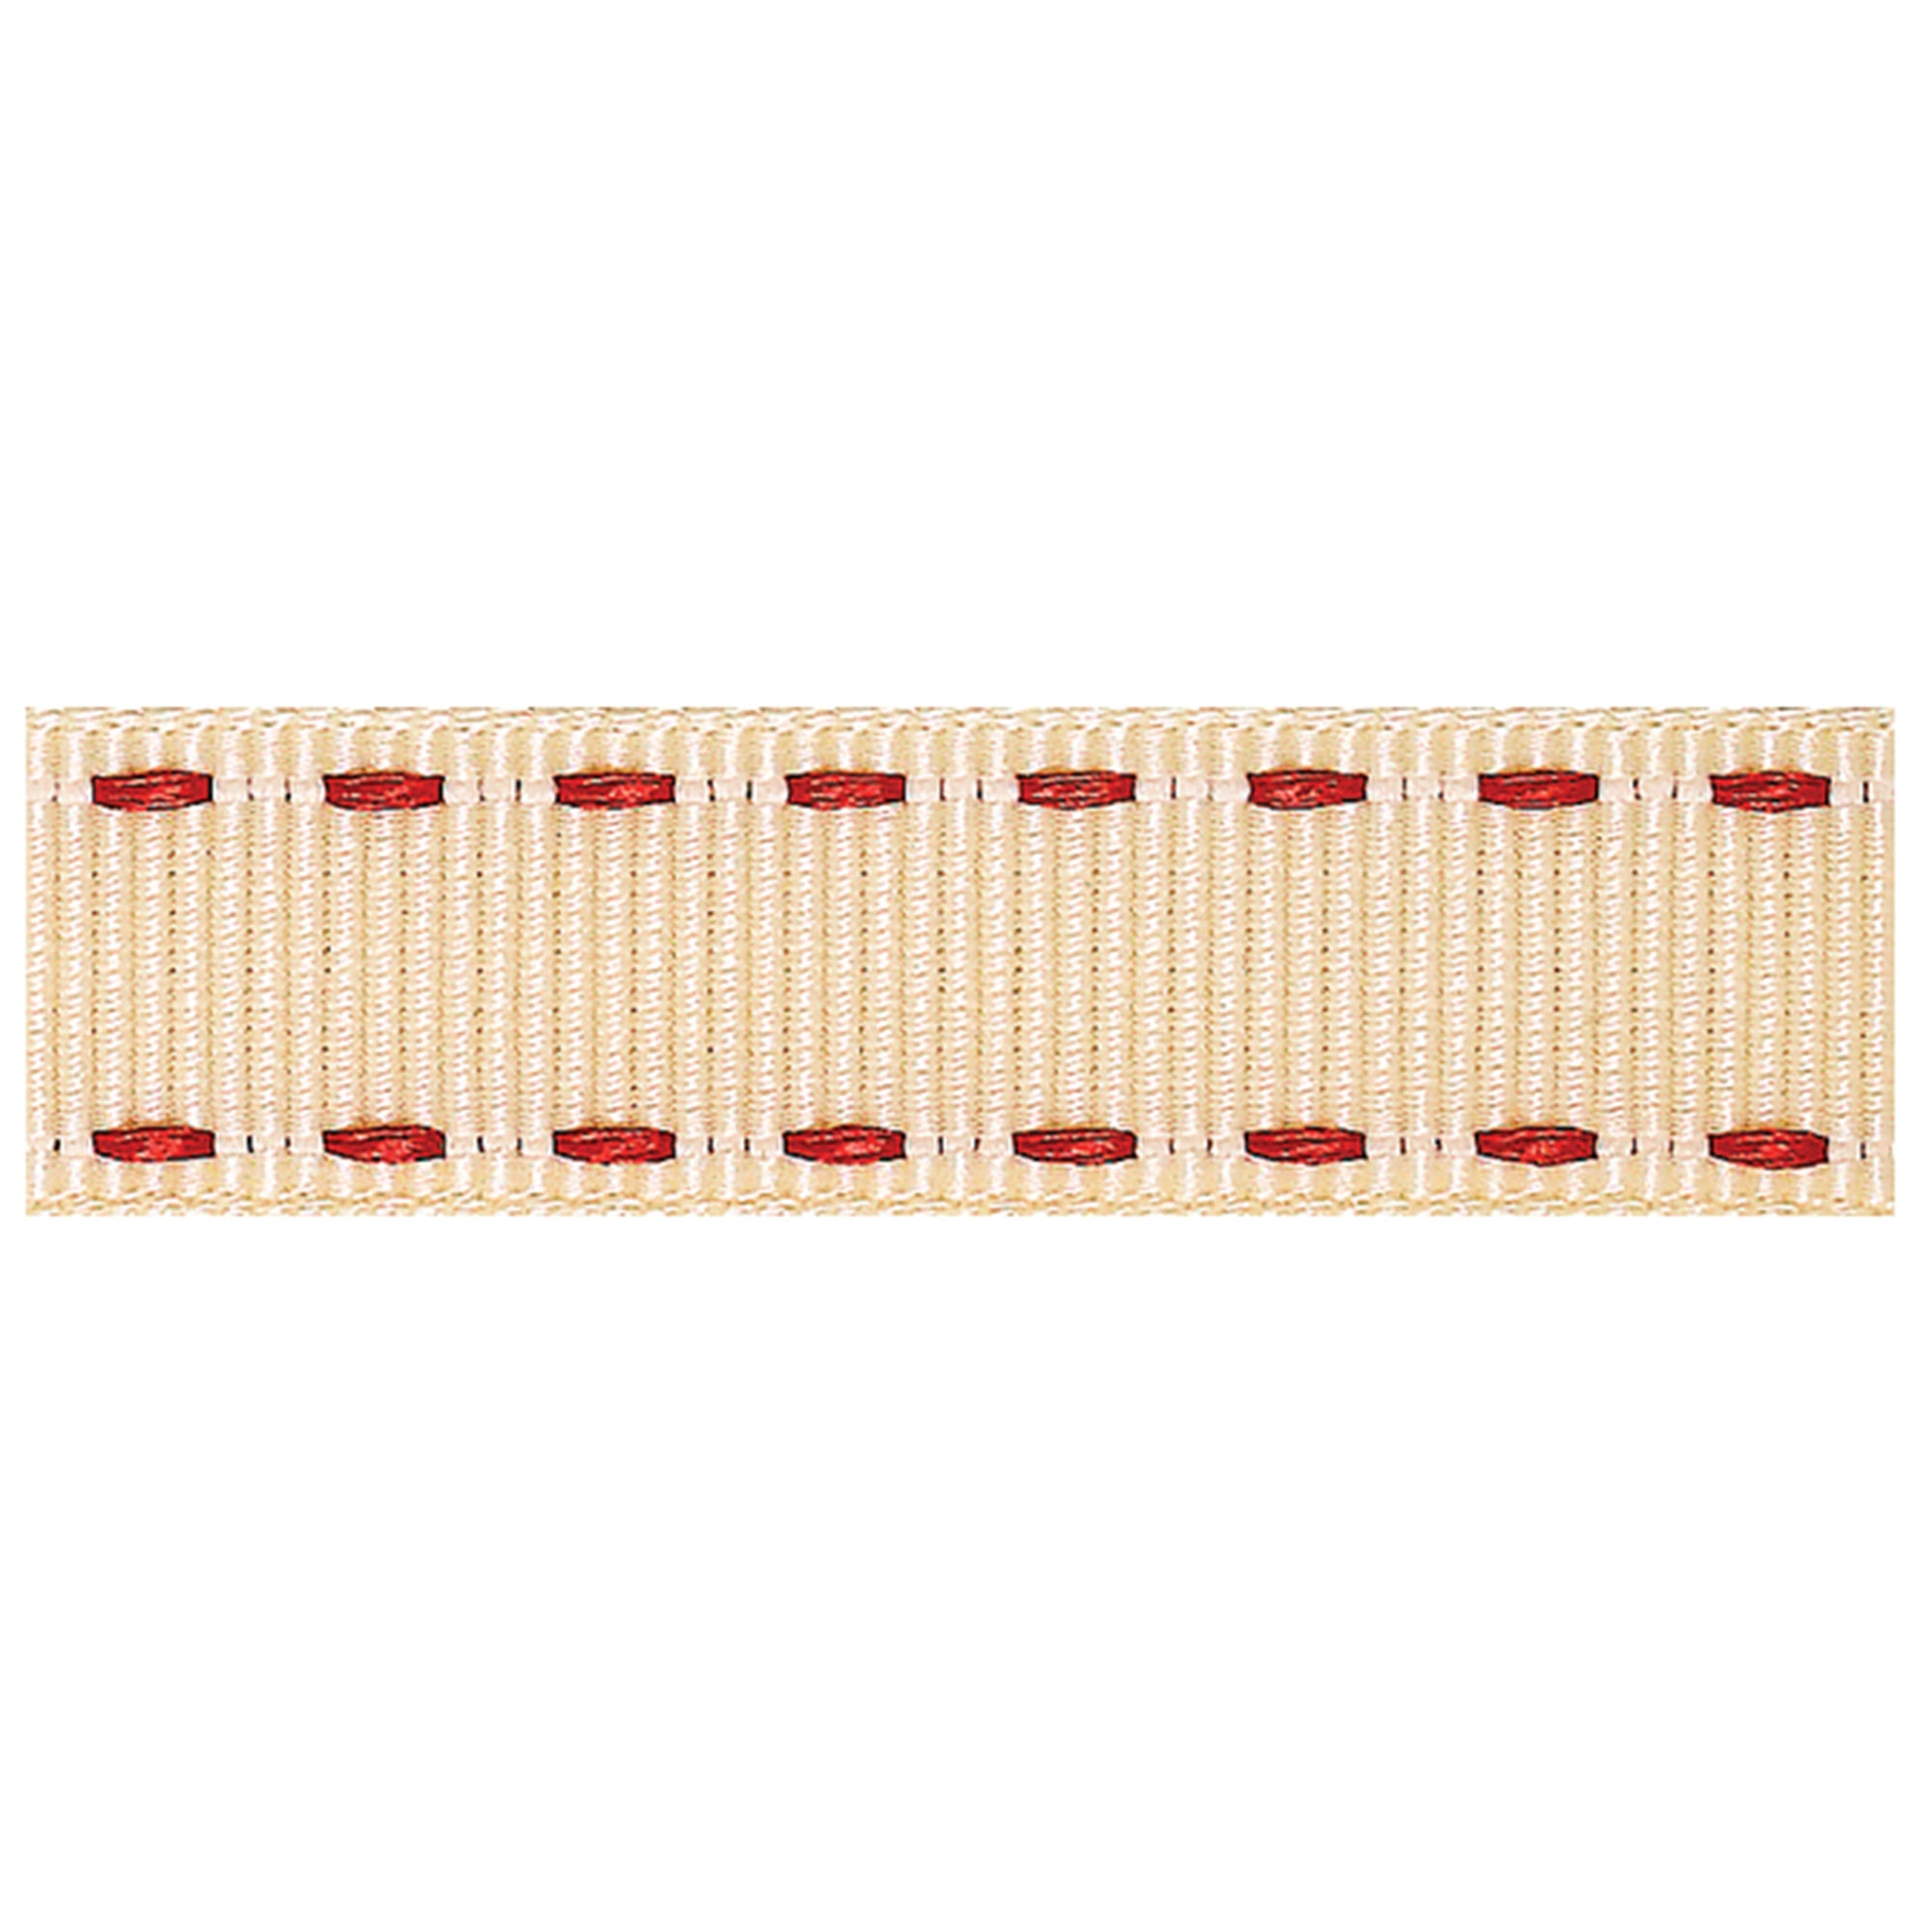 Red Stitched Grosgrain Ribbon